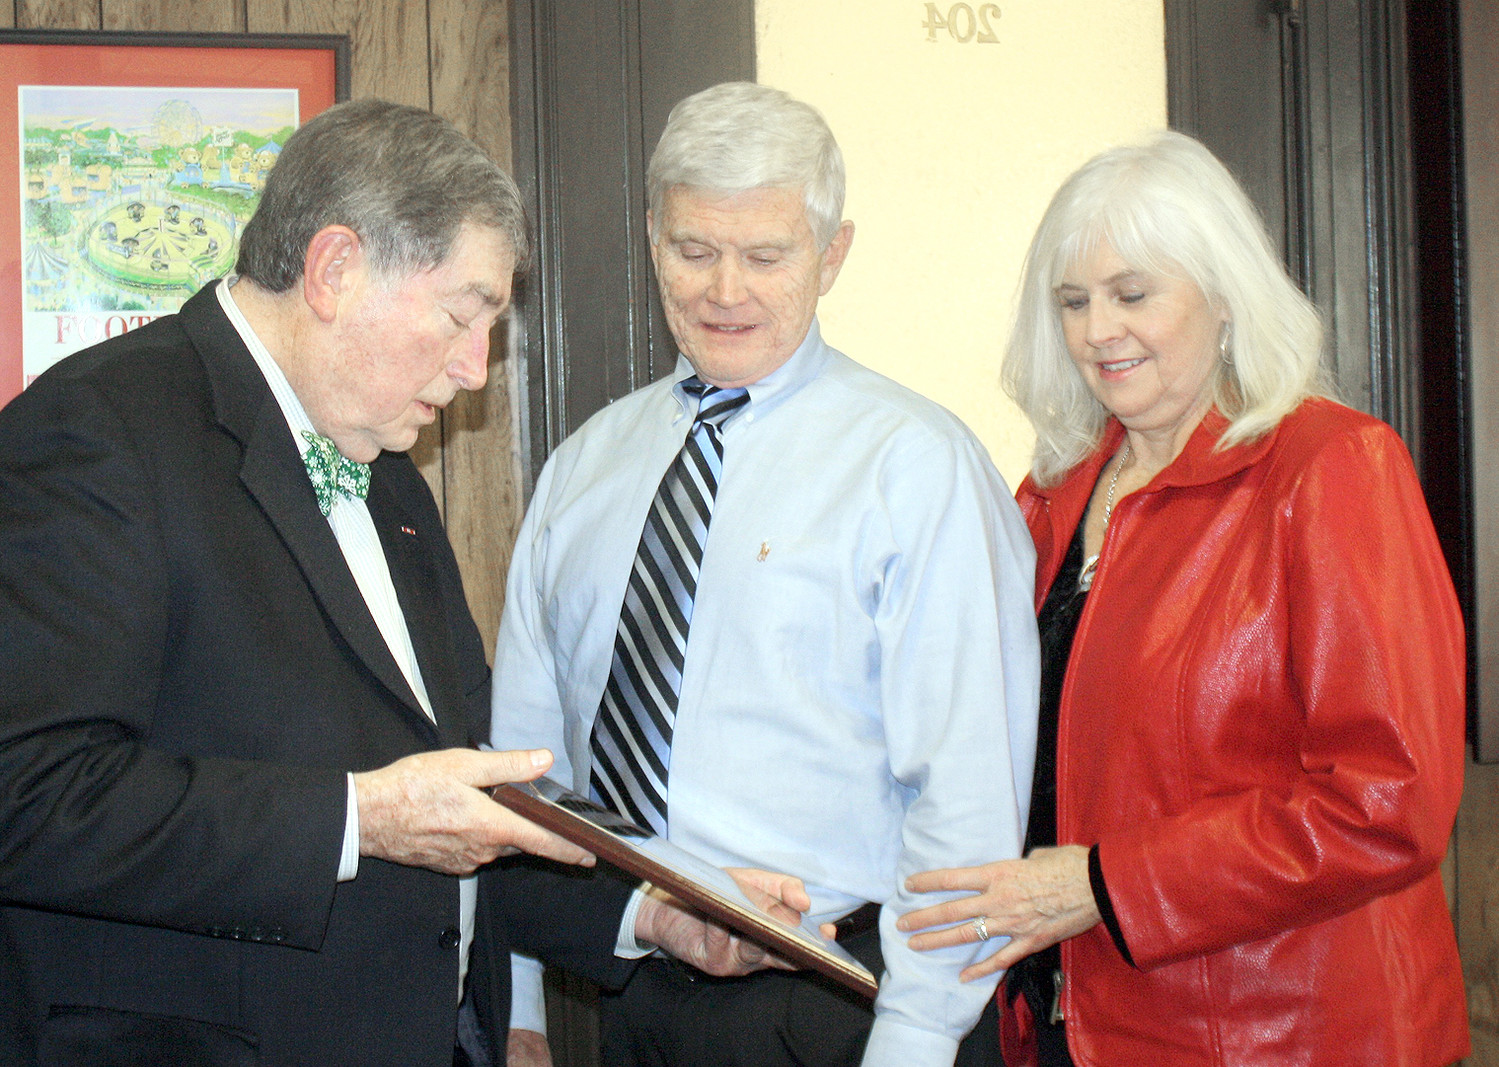 BRADLEY COUNTY DIRECTOR of the Bradley County Veterans Affairs Office Larry McDaris, left, presents a plaque of appreciation to associate Joe Davis, who has retired after more than 10 years of assisting local veterans. Looking on is Davis' wife, Judy.